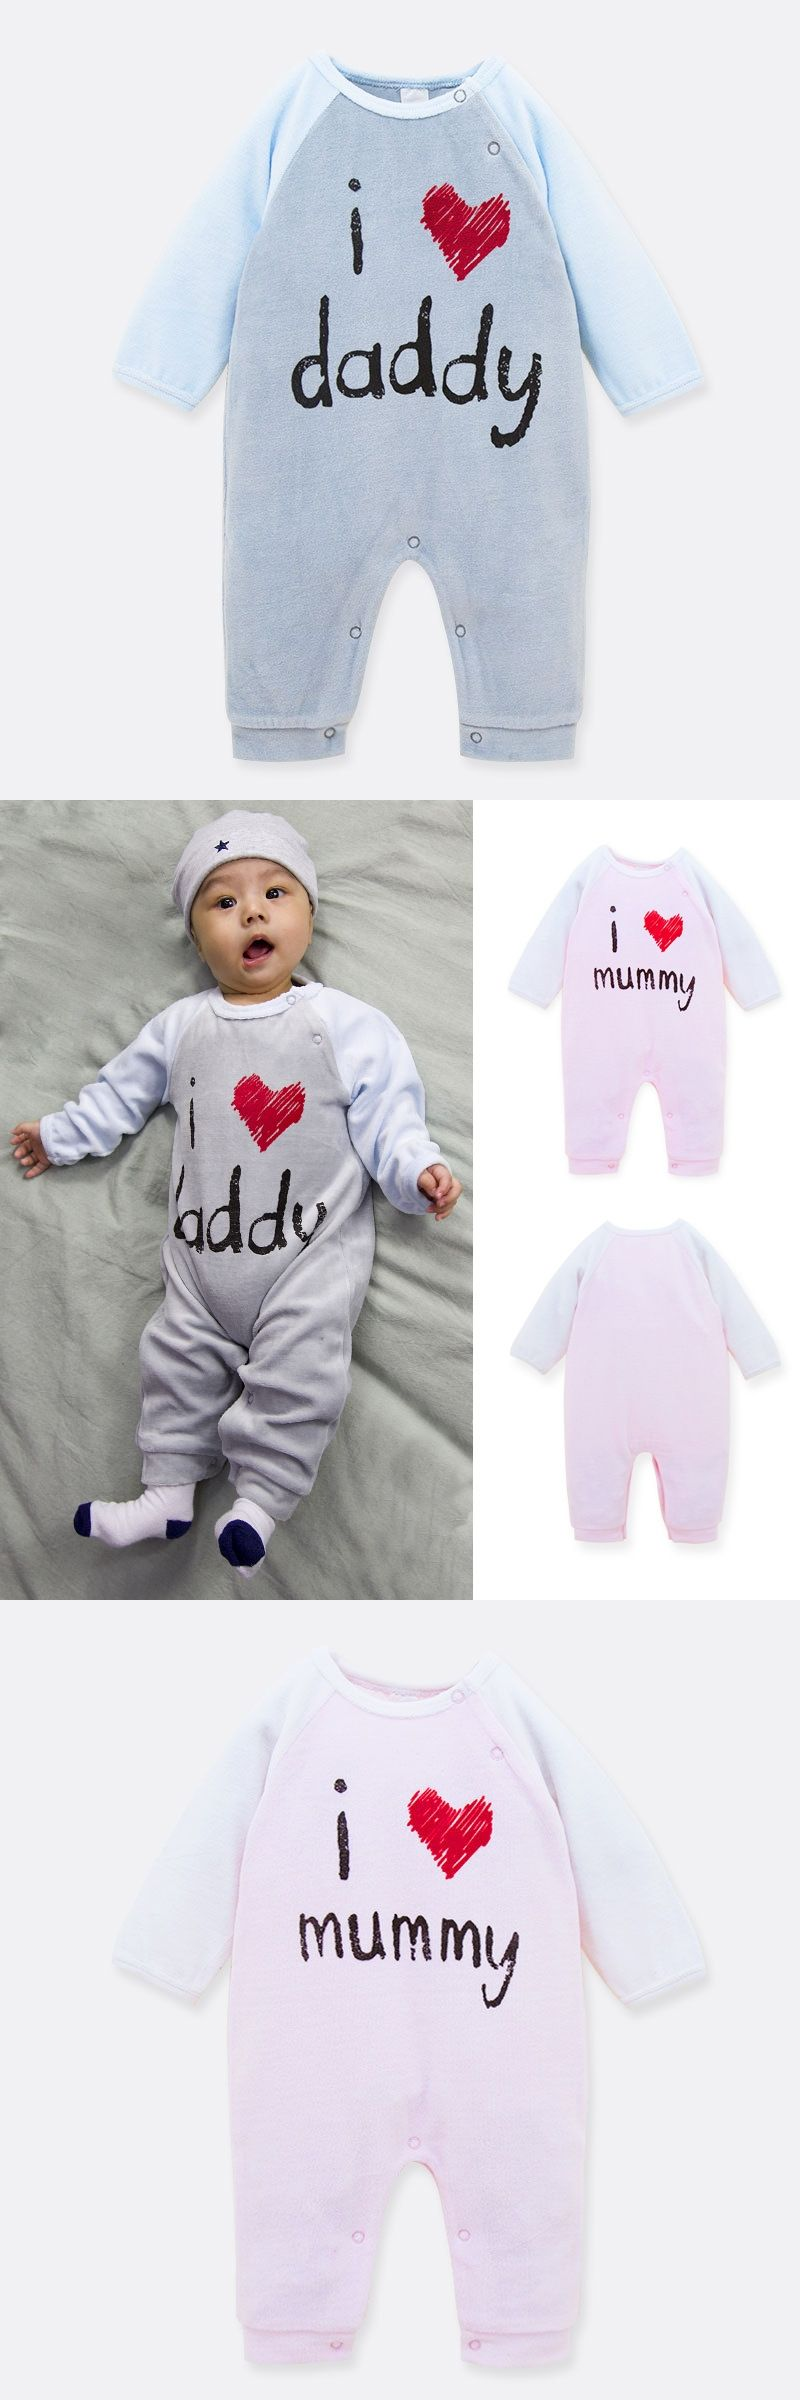 81709f2338a6 0-18M Spring Coral velvet Baby Rompers Cute baby romper mummy newborn baby  girl clothes